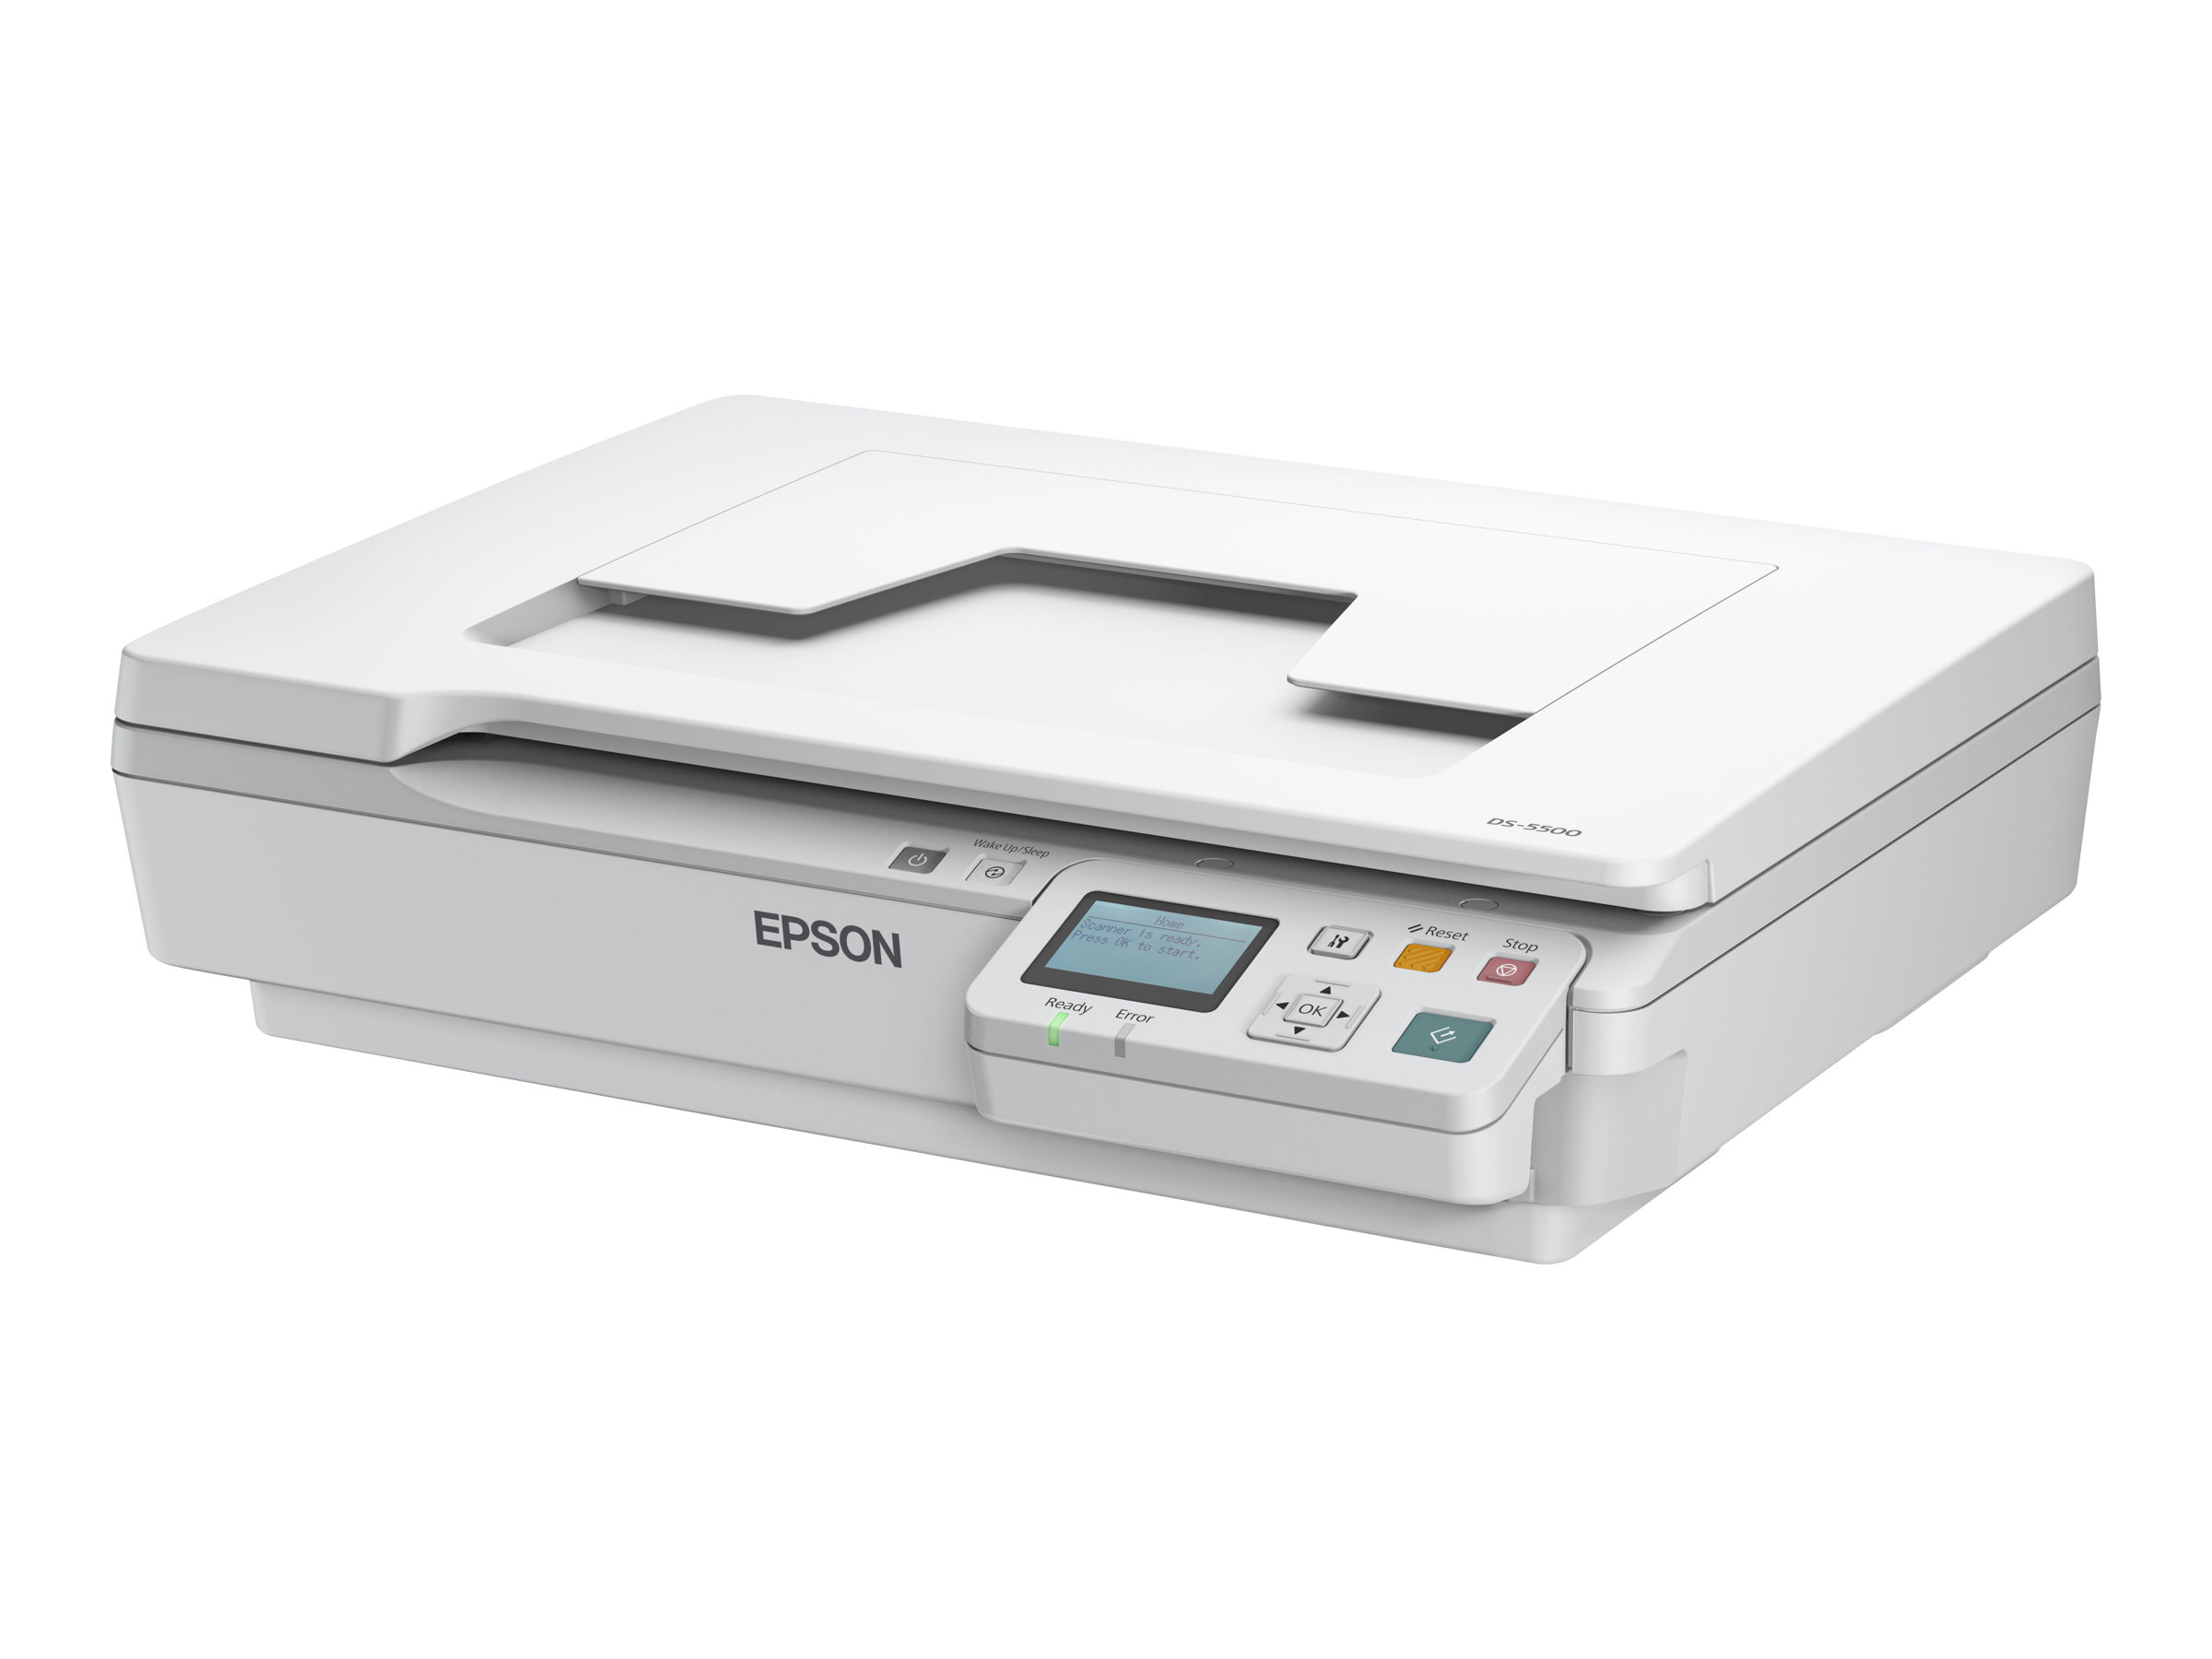 Epson WorkForce DS-5500N - scanner de documents A4 - 1200 ppp x 1200 ppp - 7.5ppm